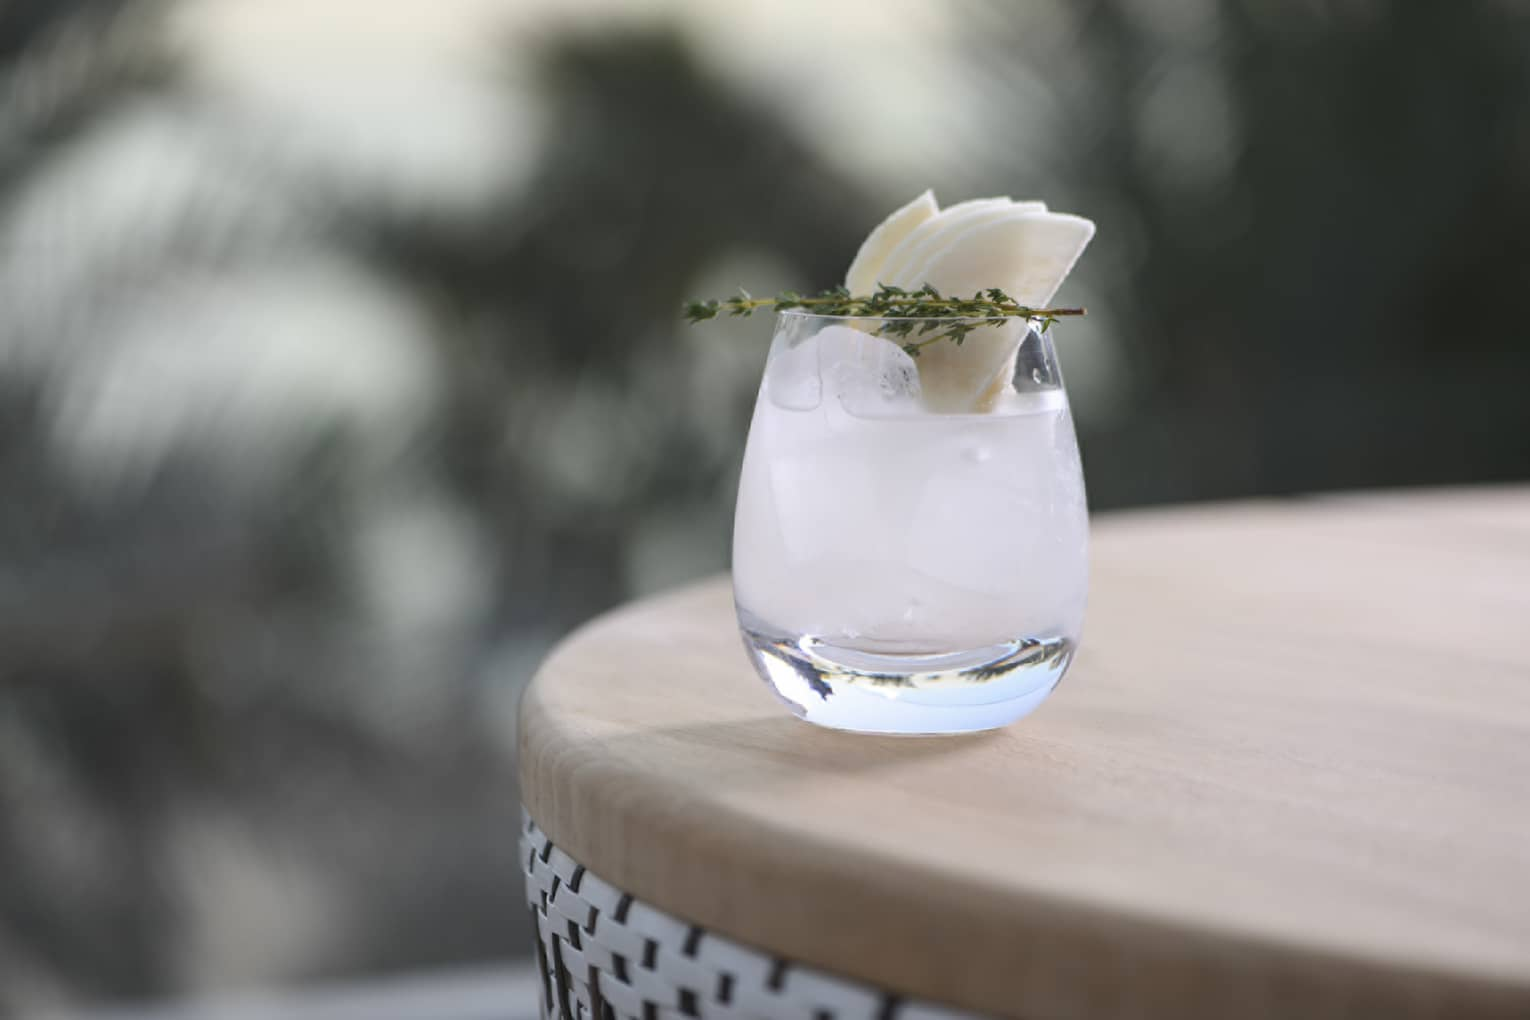 A short curved glass of a white cocktail garnished with a sprig of greenery and citrus on a round wooden table